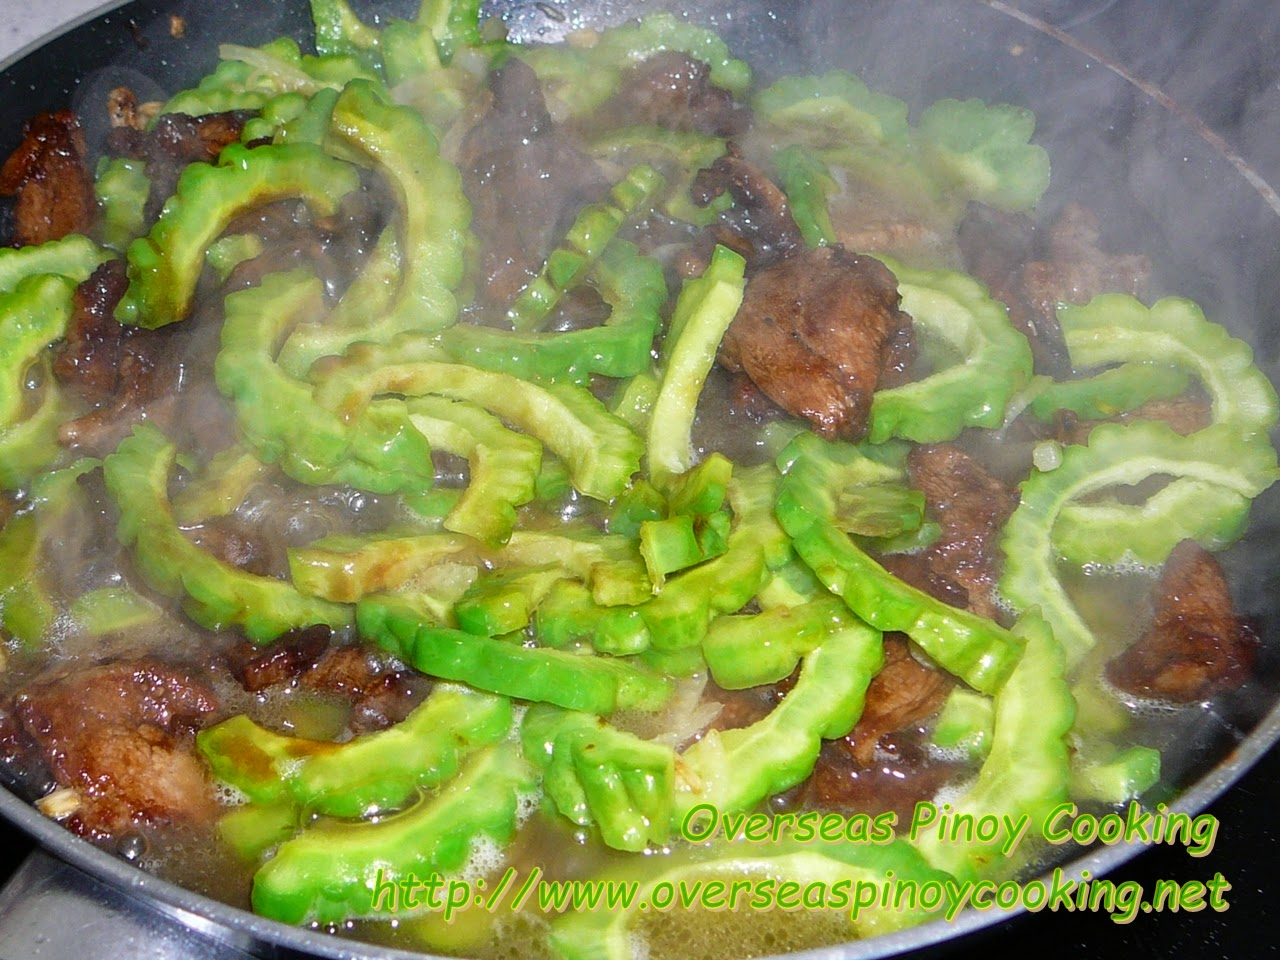 Pork and Ampalaya with Oyster Sauce - Cooking Procedure